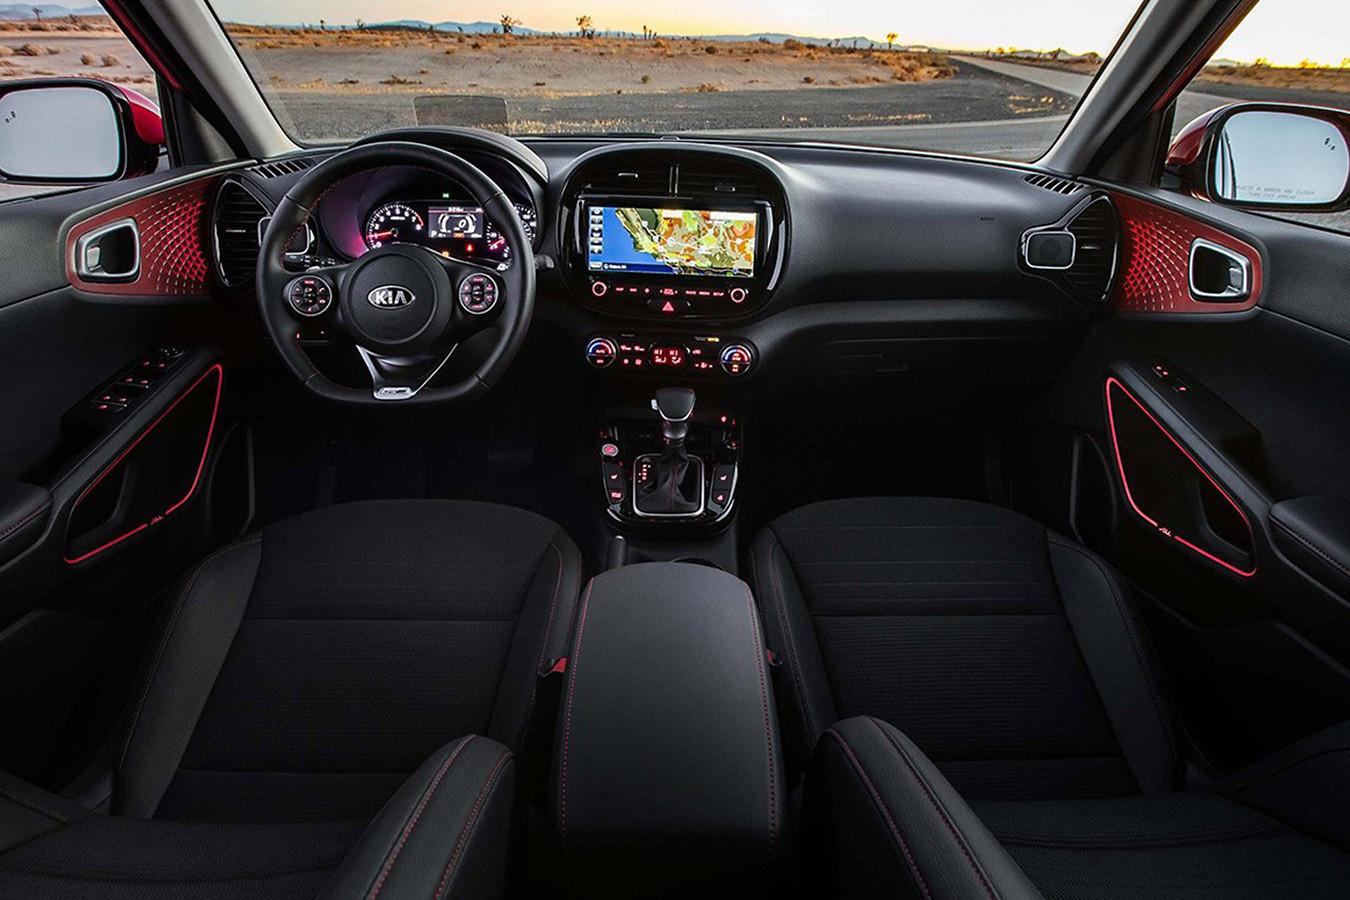 2020 Kia Soul Driver's Console and Front Dashboard